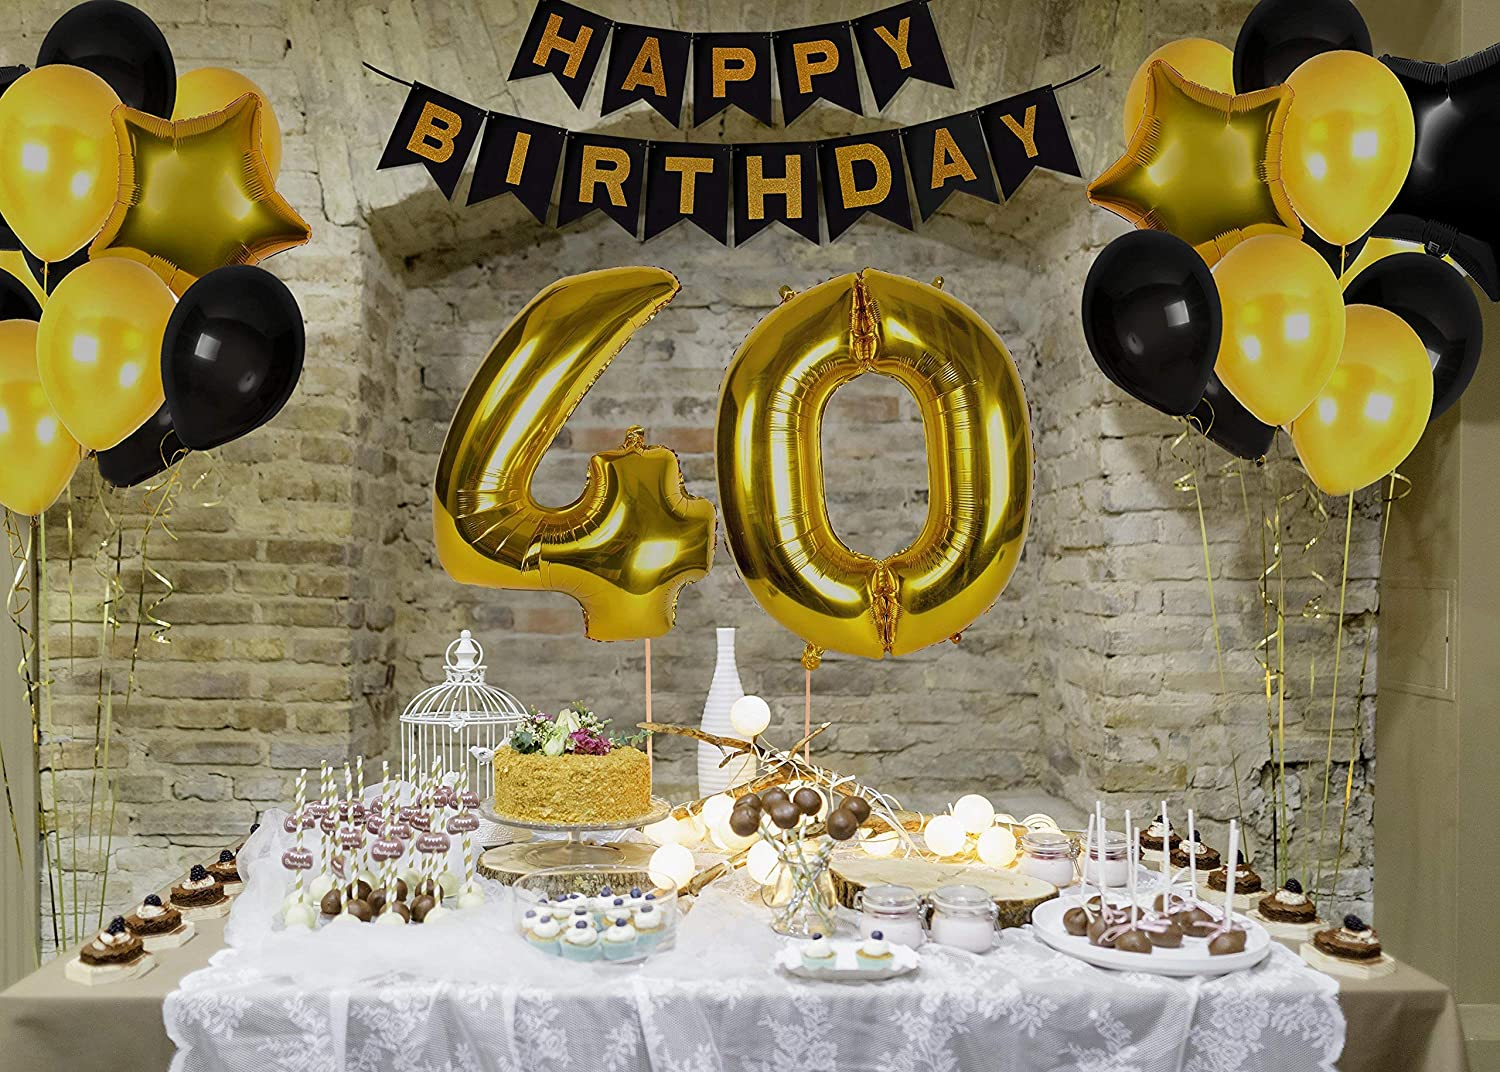 40th Birthday Decorations Ideas And Gifts For Women And Men Photo Booth Props And Happy Bday Garlands Gold Backdrop Centerpieces Party Supplies Amazon Ca Home Kitchen